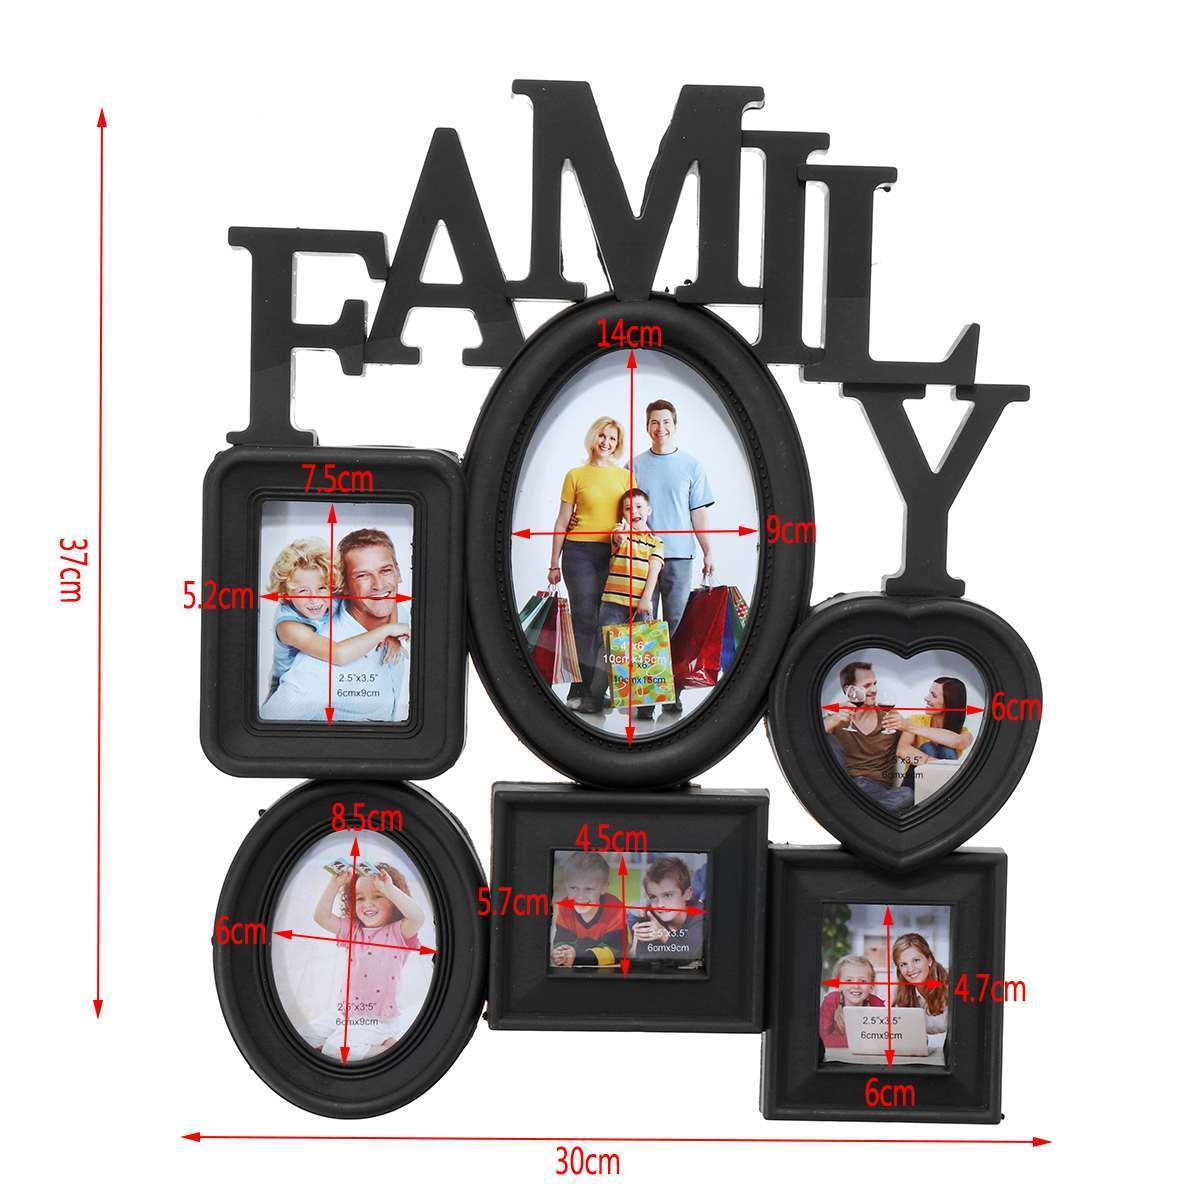 Family Photo Frame Wall Hanging 6 Pictures Holder Display Home Decor Gift Black Multi-sized Back Side With Pull Tabs 30x37cm J190716